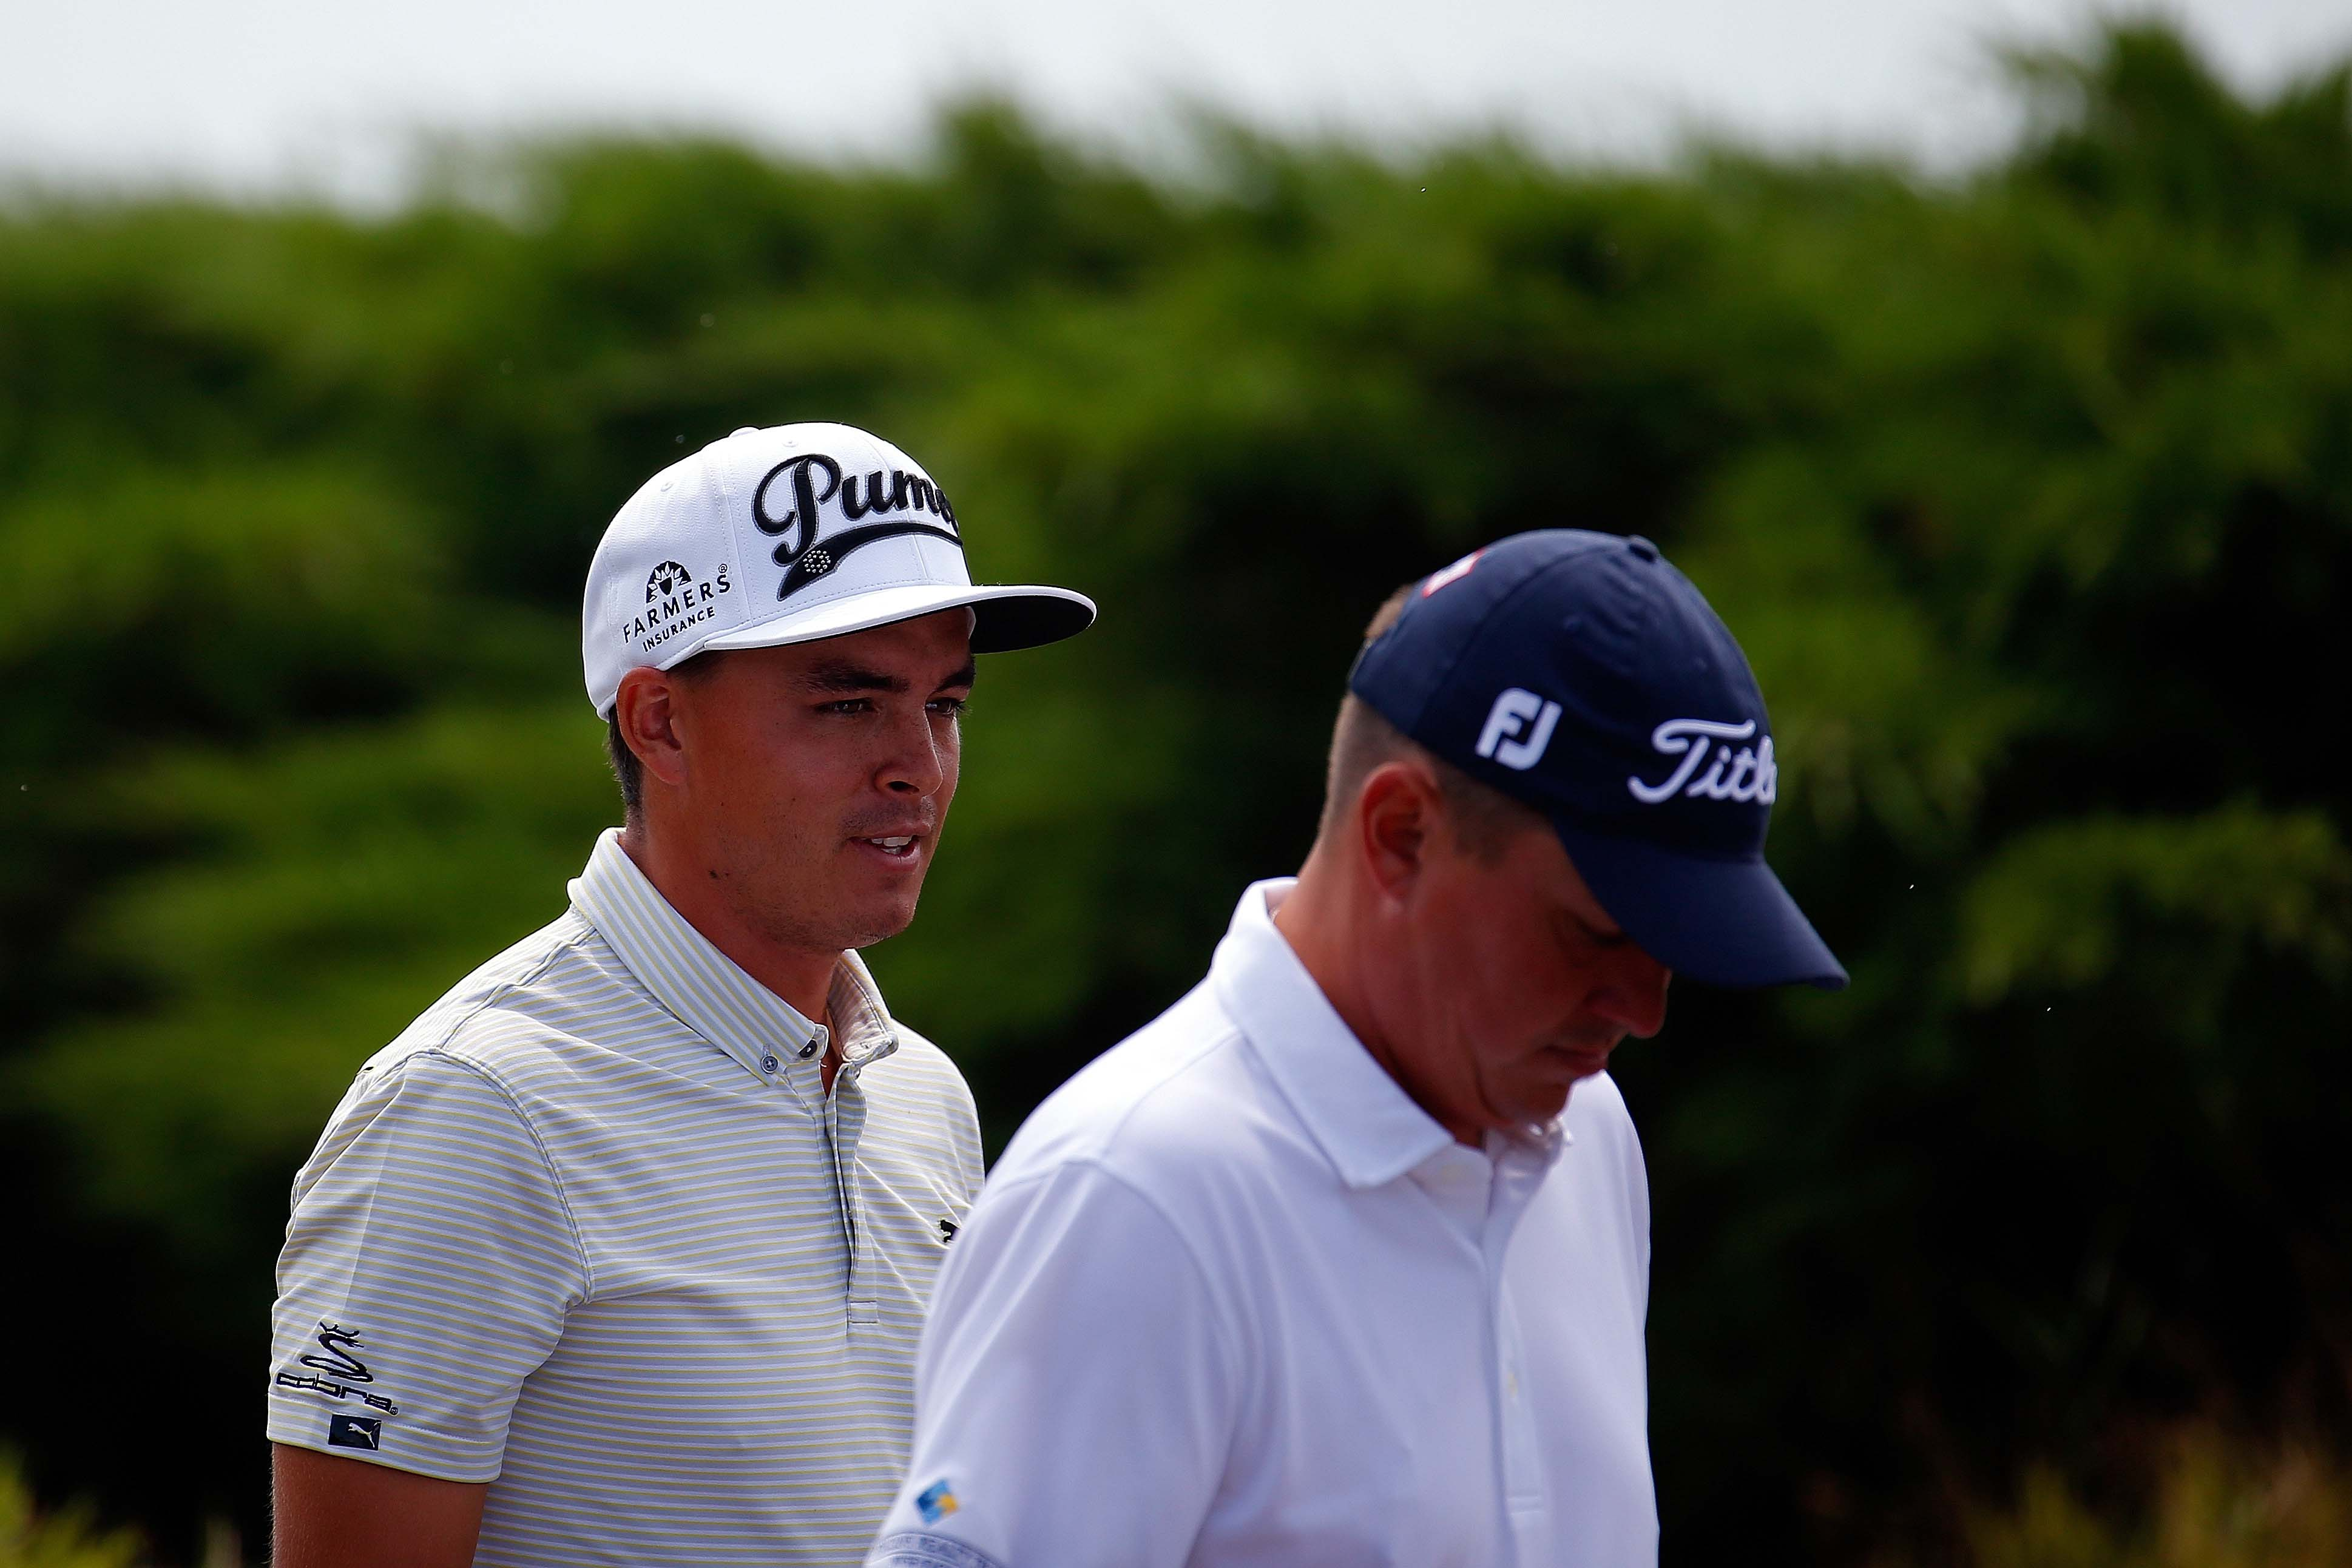 Rickie Fowler and Jason Dufner